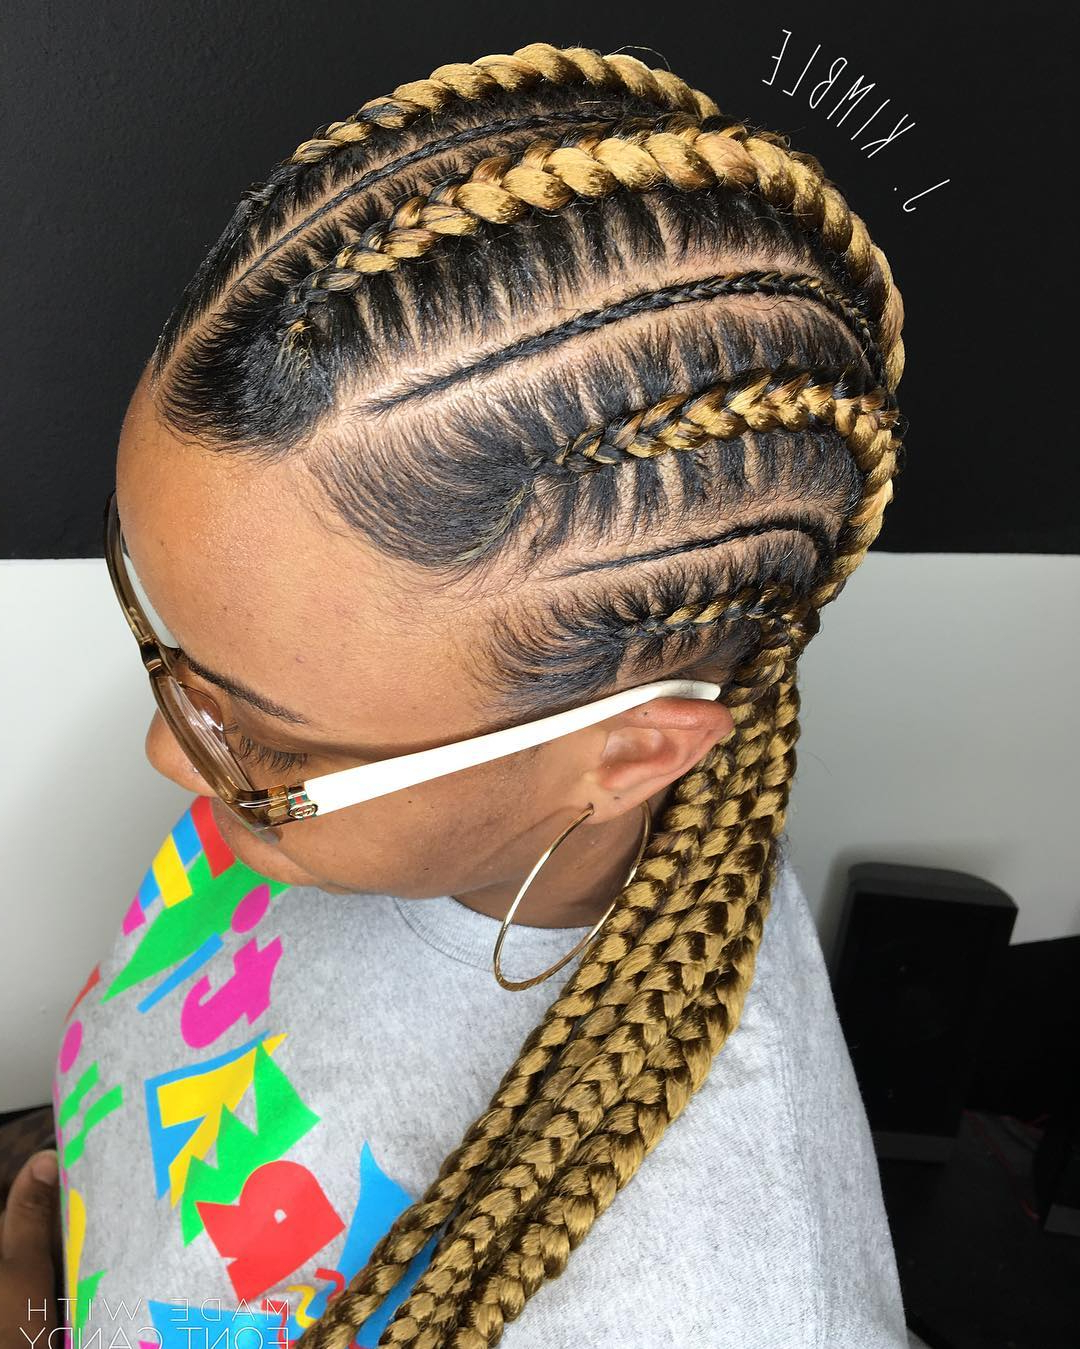 70 Best Black Braided Hairstyles That Turn Heads In 2019 For Latest Side Cornrows Braided Hairstyles (View 5 of 20)